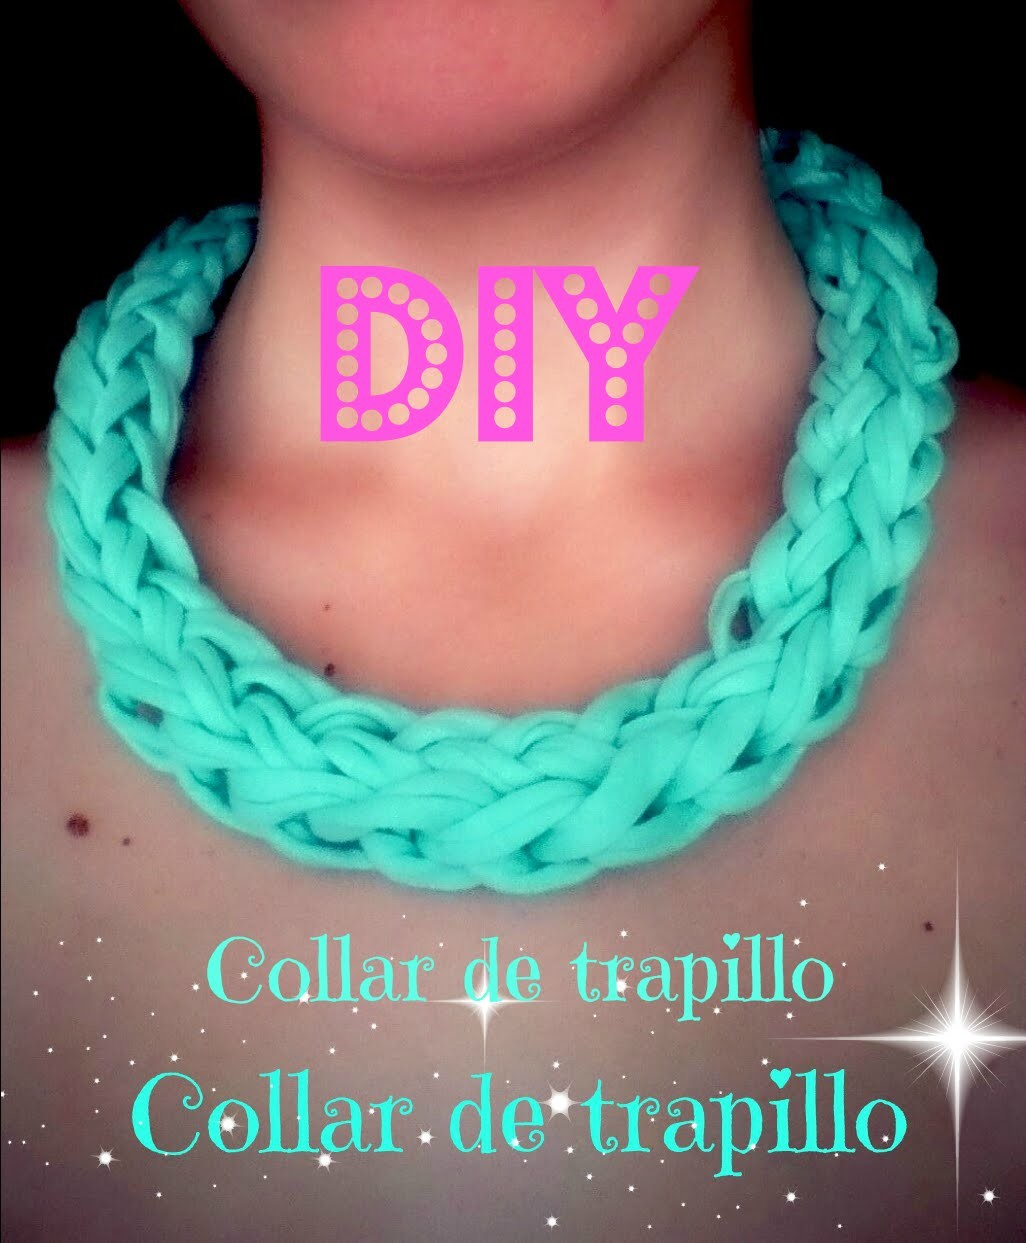 DIY Collar de trapillo en 5 minutos.5 minutes Necklace